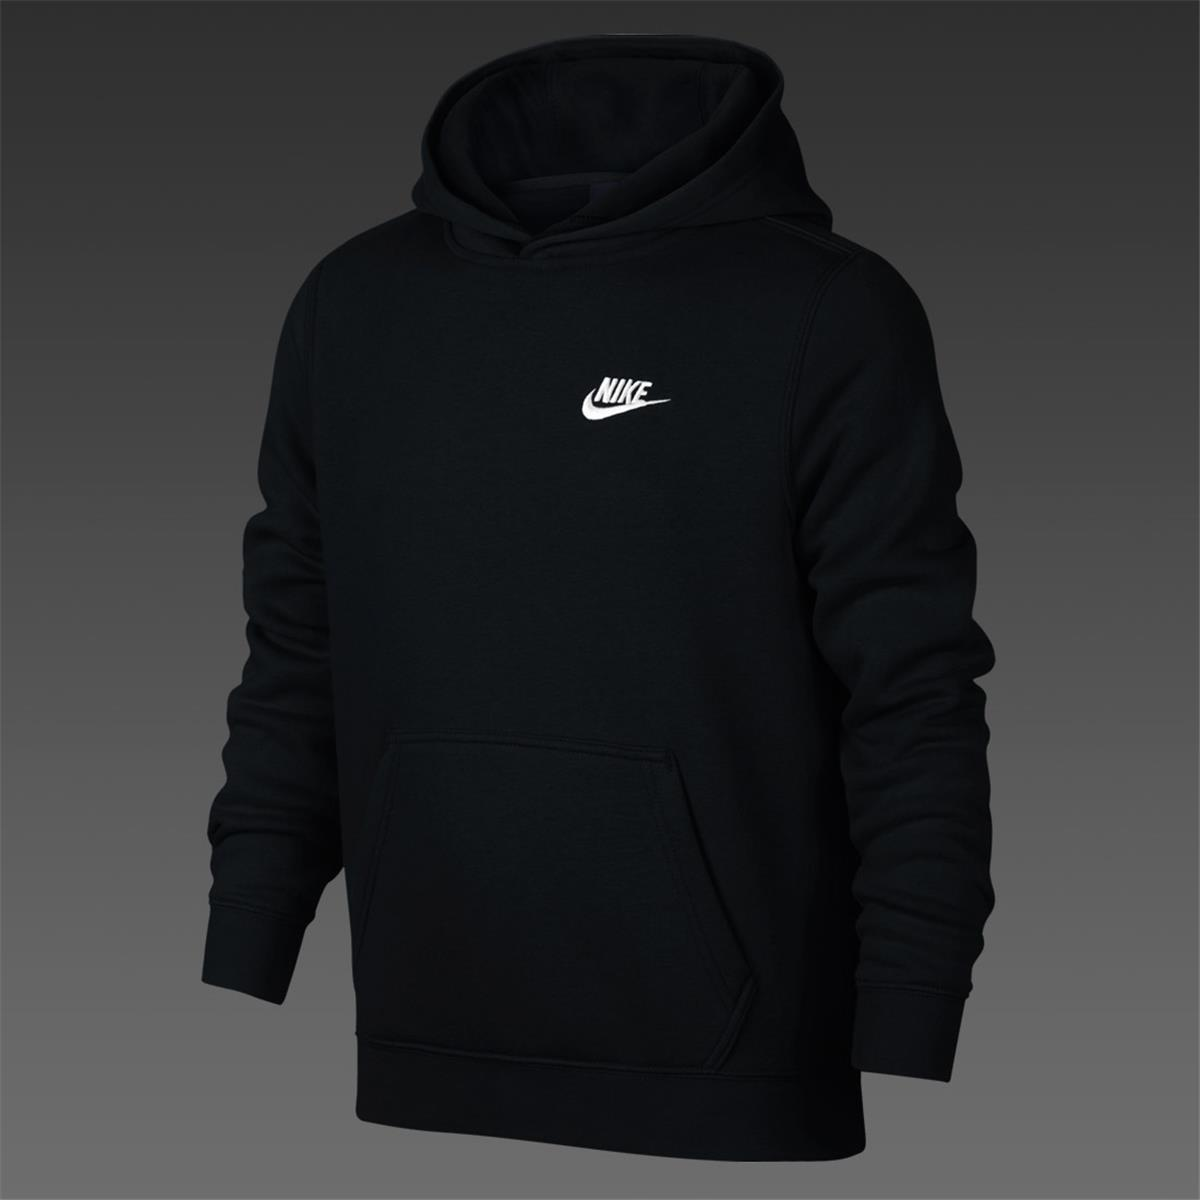 8fe68a35e272 Nike Brushed Fleece Junior Hoodie (Black)